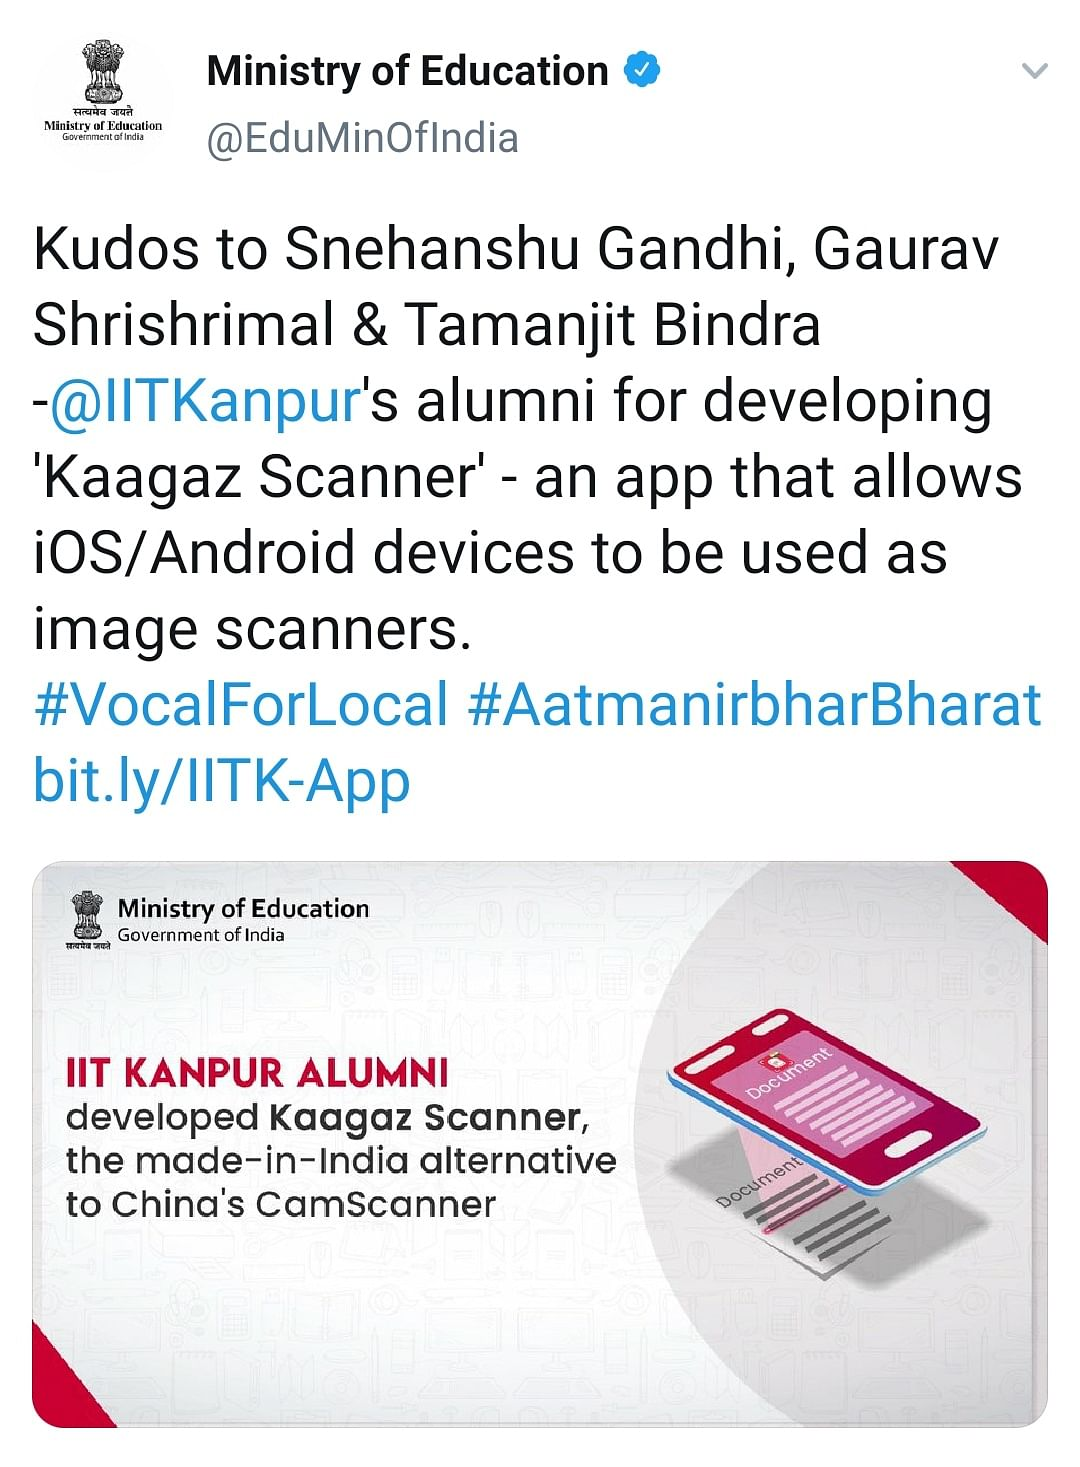 Tweet by Ministry of Education lauding the new app